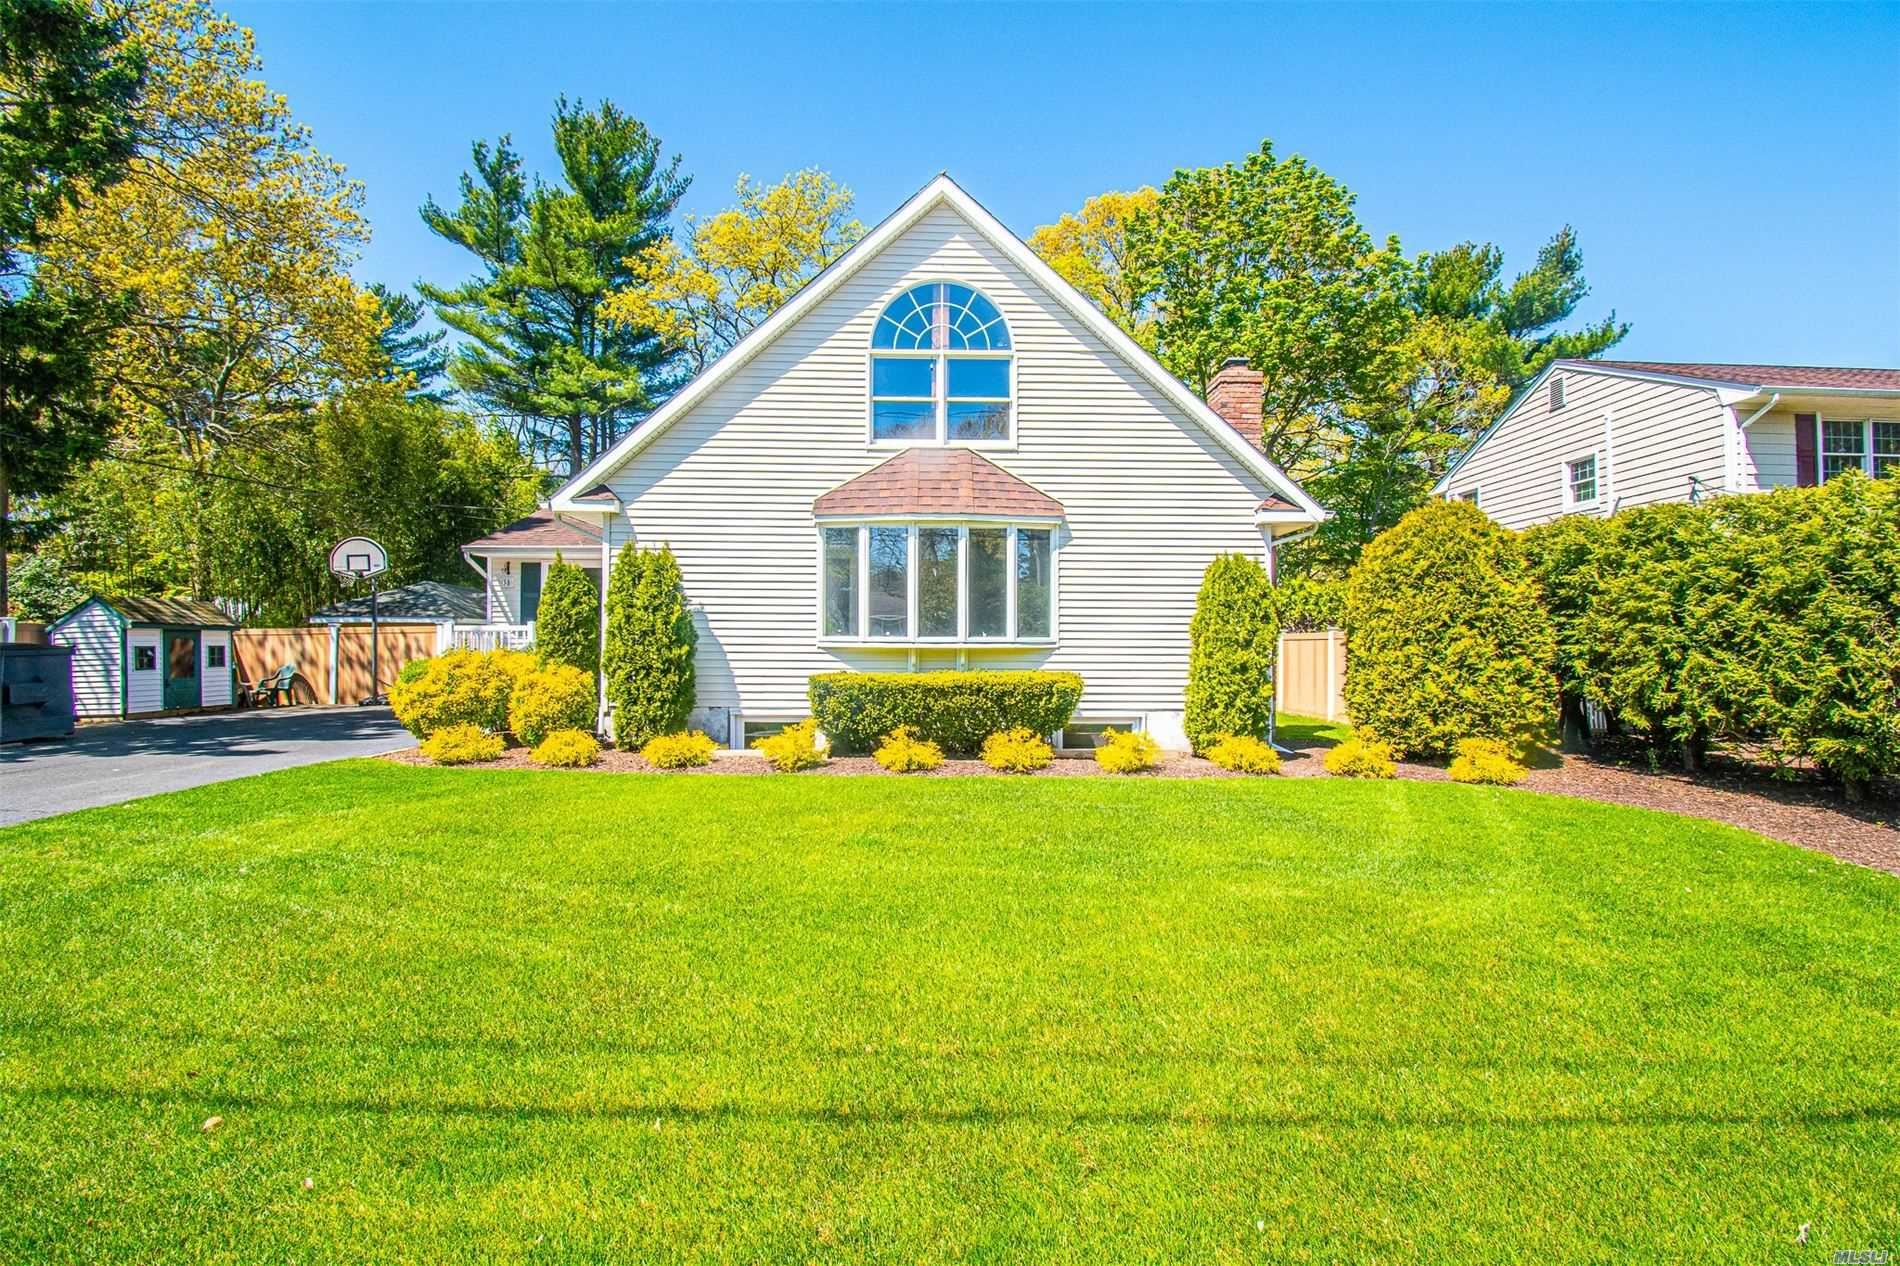 38 Curtis Drive, Sound Beach, NY 11789 - MLS#: 3235082